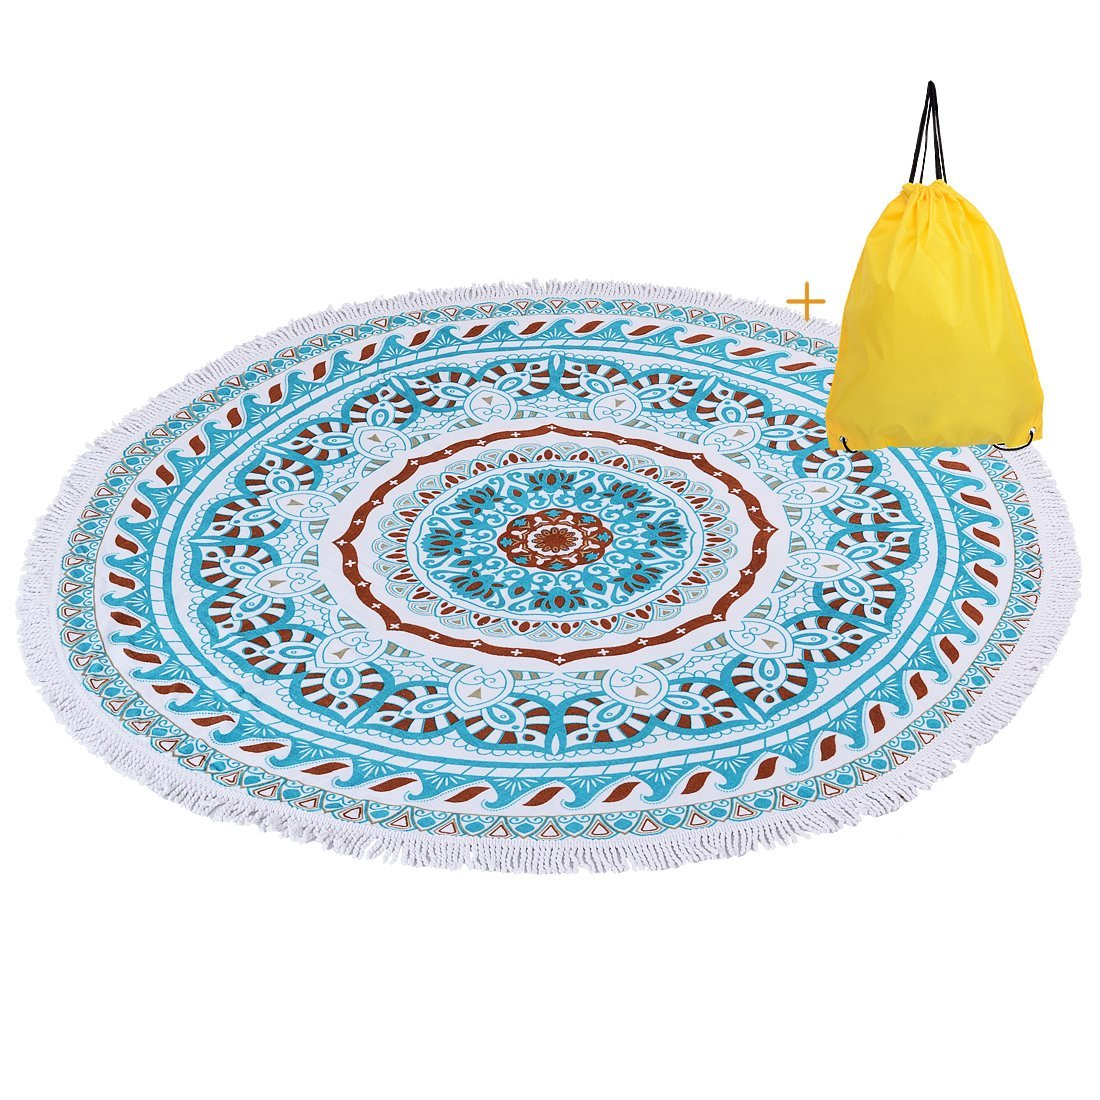 Ange-la Round Beach Towel with Tassel Fringe -100% Cotton Indian Mandala Round Roundie Beach Throw Tapestry, Yoga Mat, Table Cloth, Wall Hanging 60 inches Diameter Sea Green w/ a Waterproof Beach Bag